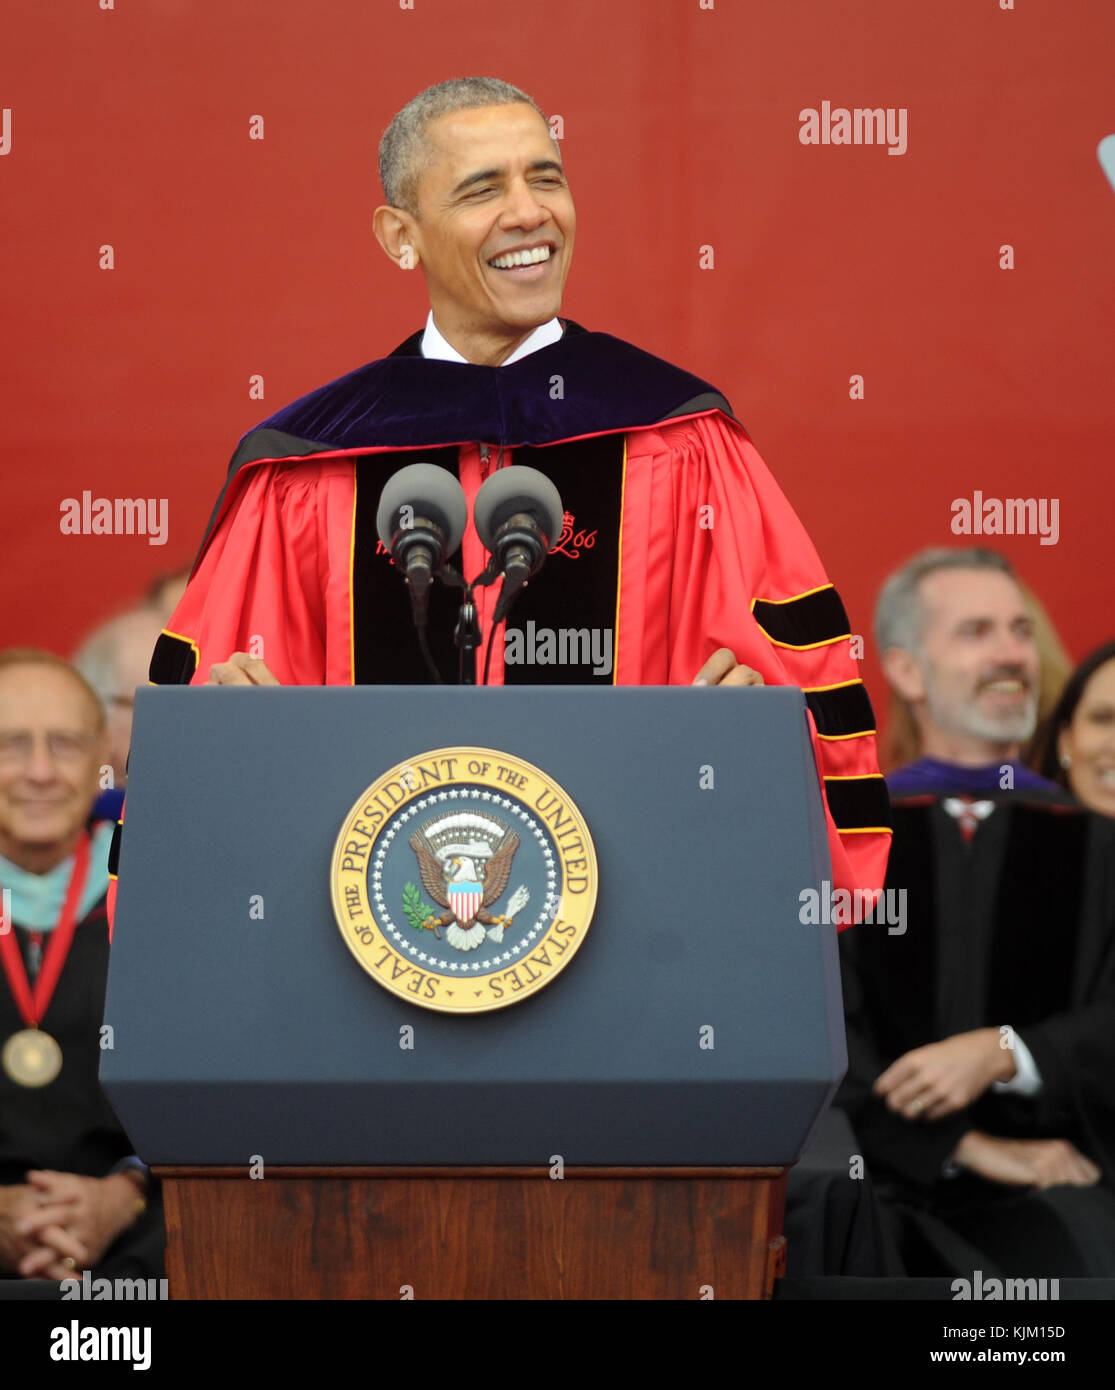 NEW BRUNSWICK, NJ - MAY 15: President Barack Obama receives honory degree from Rutgers President Robert Barchi and Stock Photo